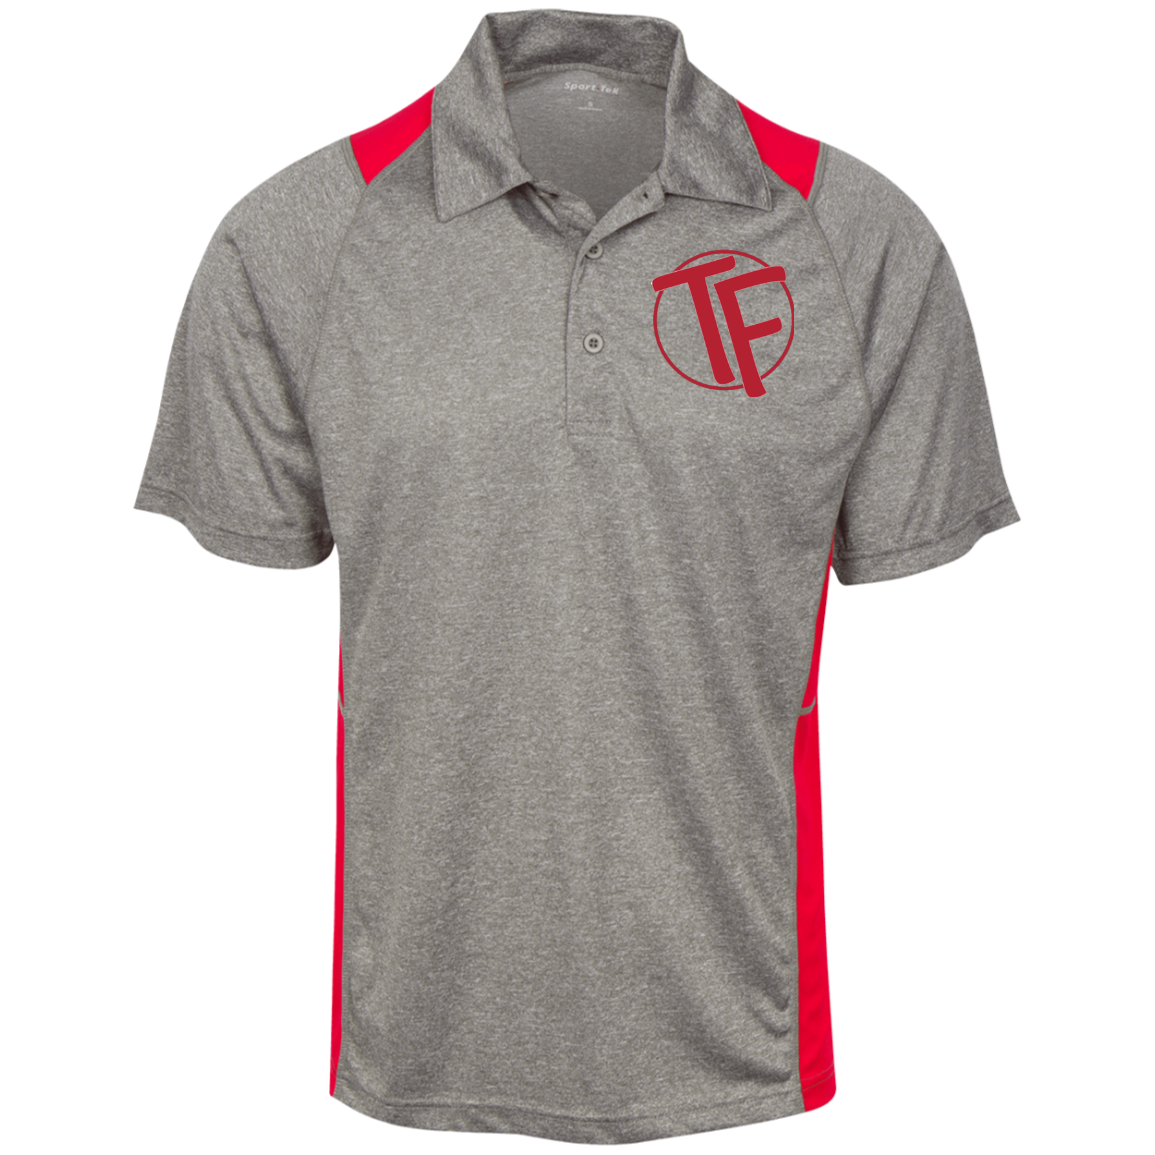 TYFE Gray/Red Men's Moisture Wicking Polo